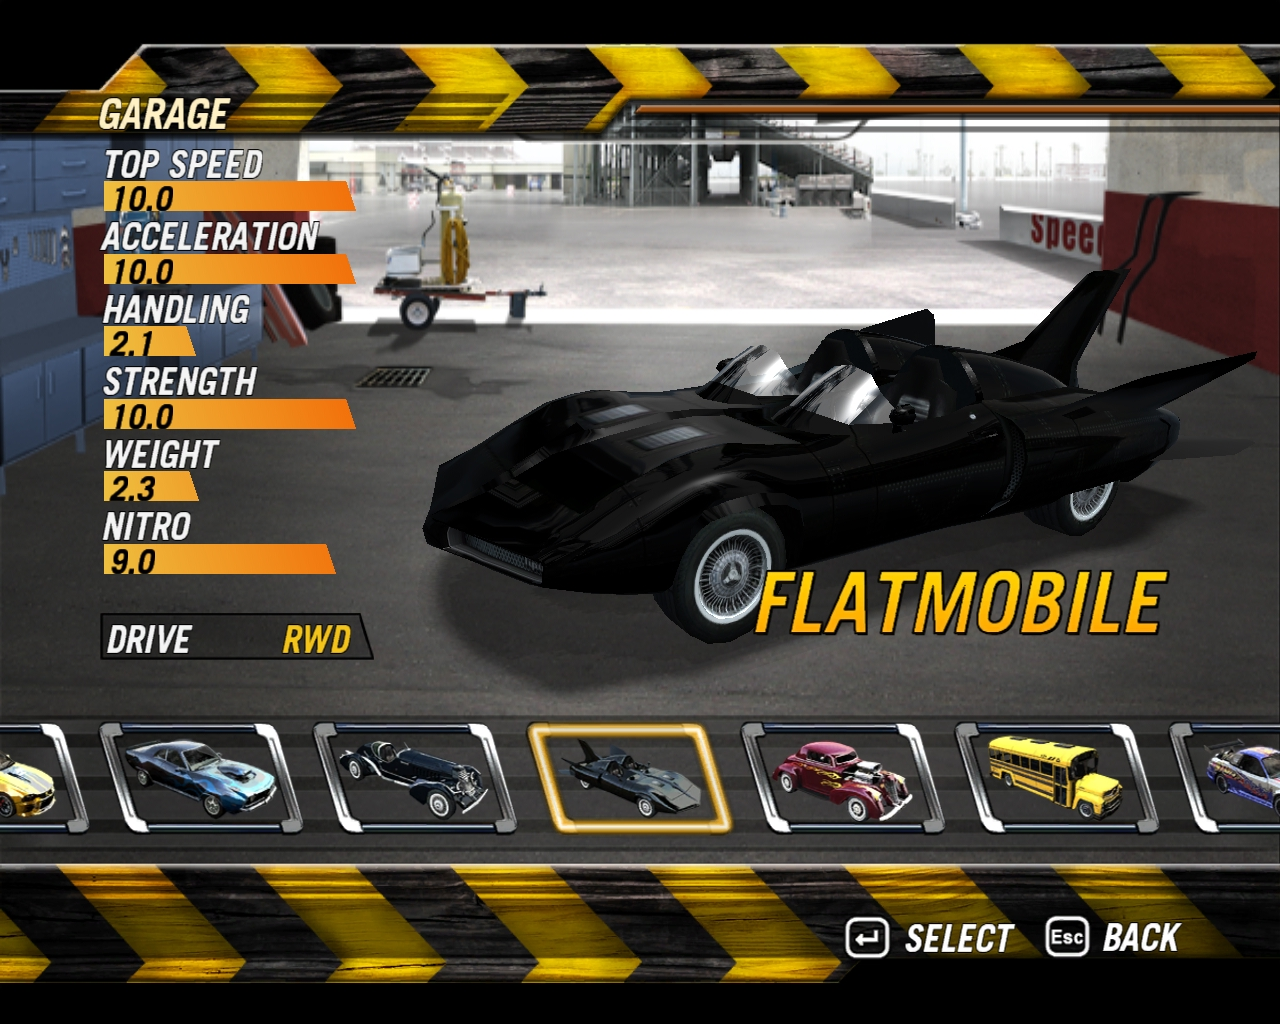 Flatmobile Flatoutgame Wiki Fandom Powered By Wikia HD Wallpapers Download free images and photos [musssic.tk]